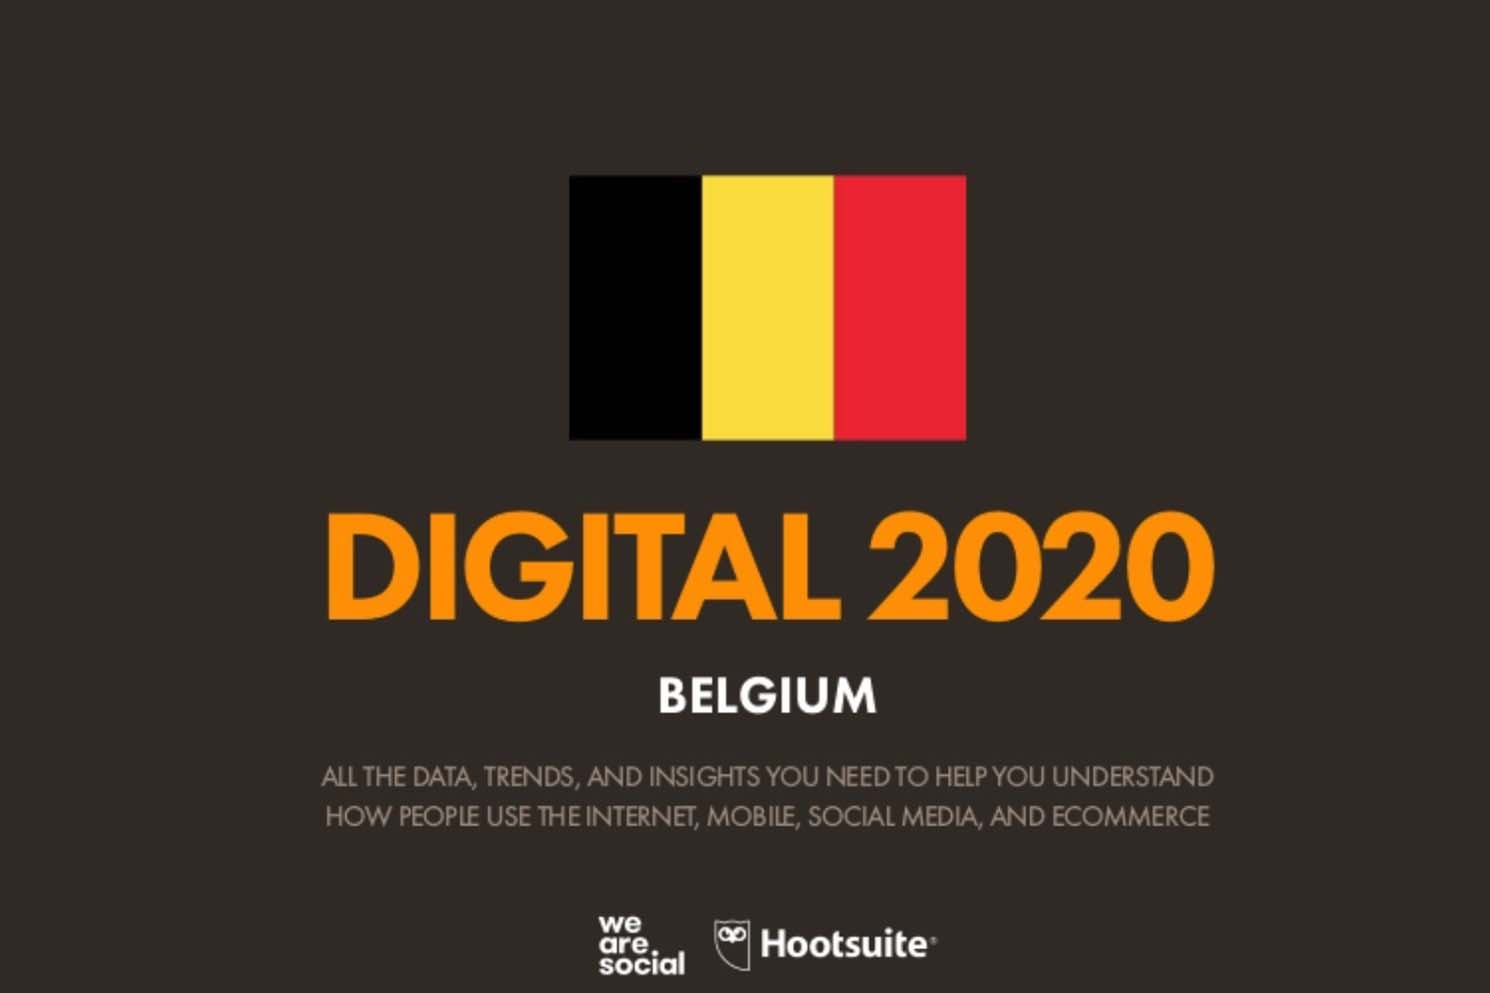 Cijfers over internet, sociale media en e-commerce in België 2020